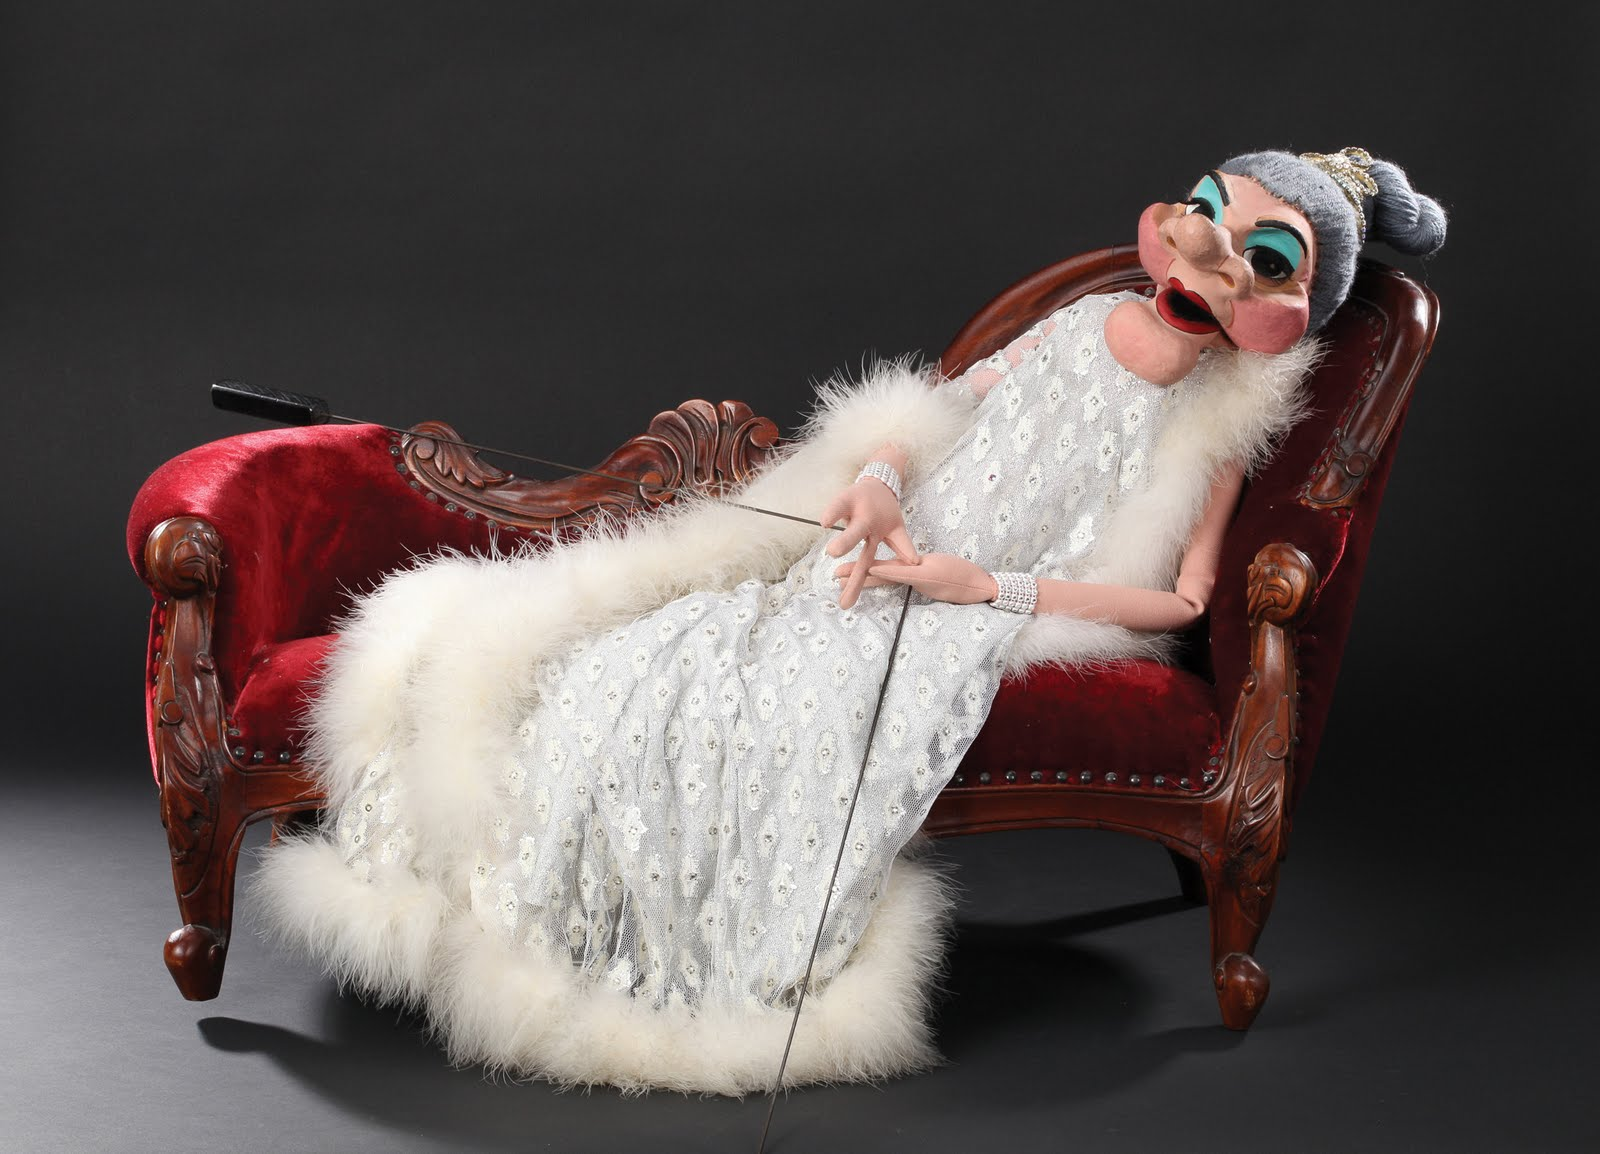 Wayland flowers madame puppet with fainting couch and flowers